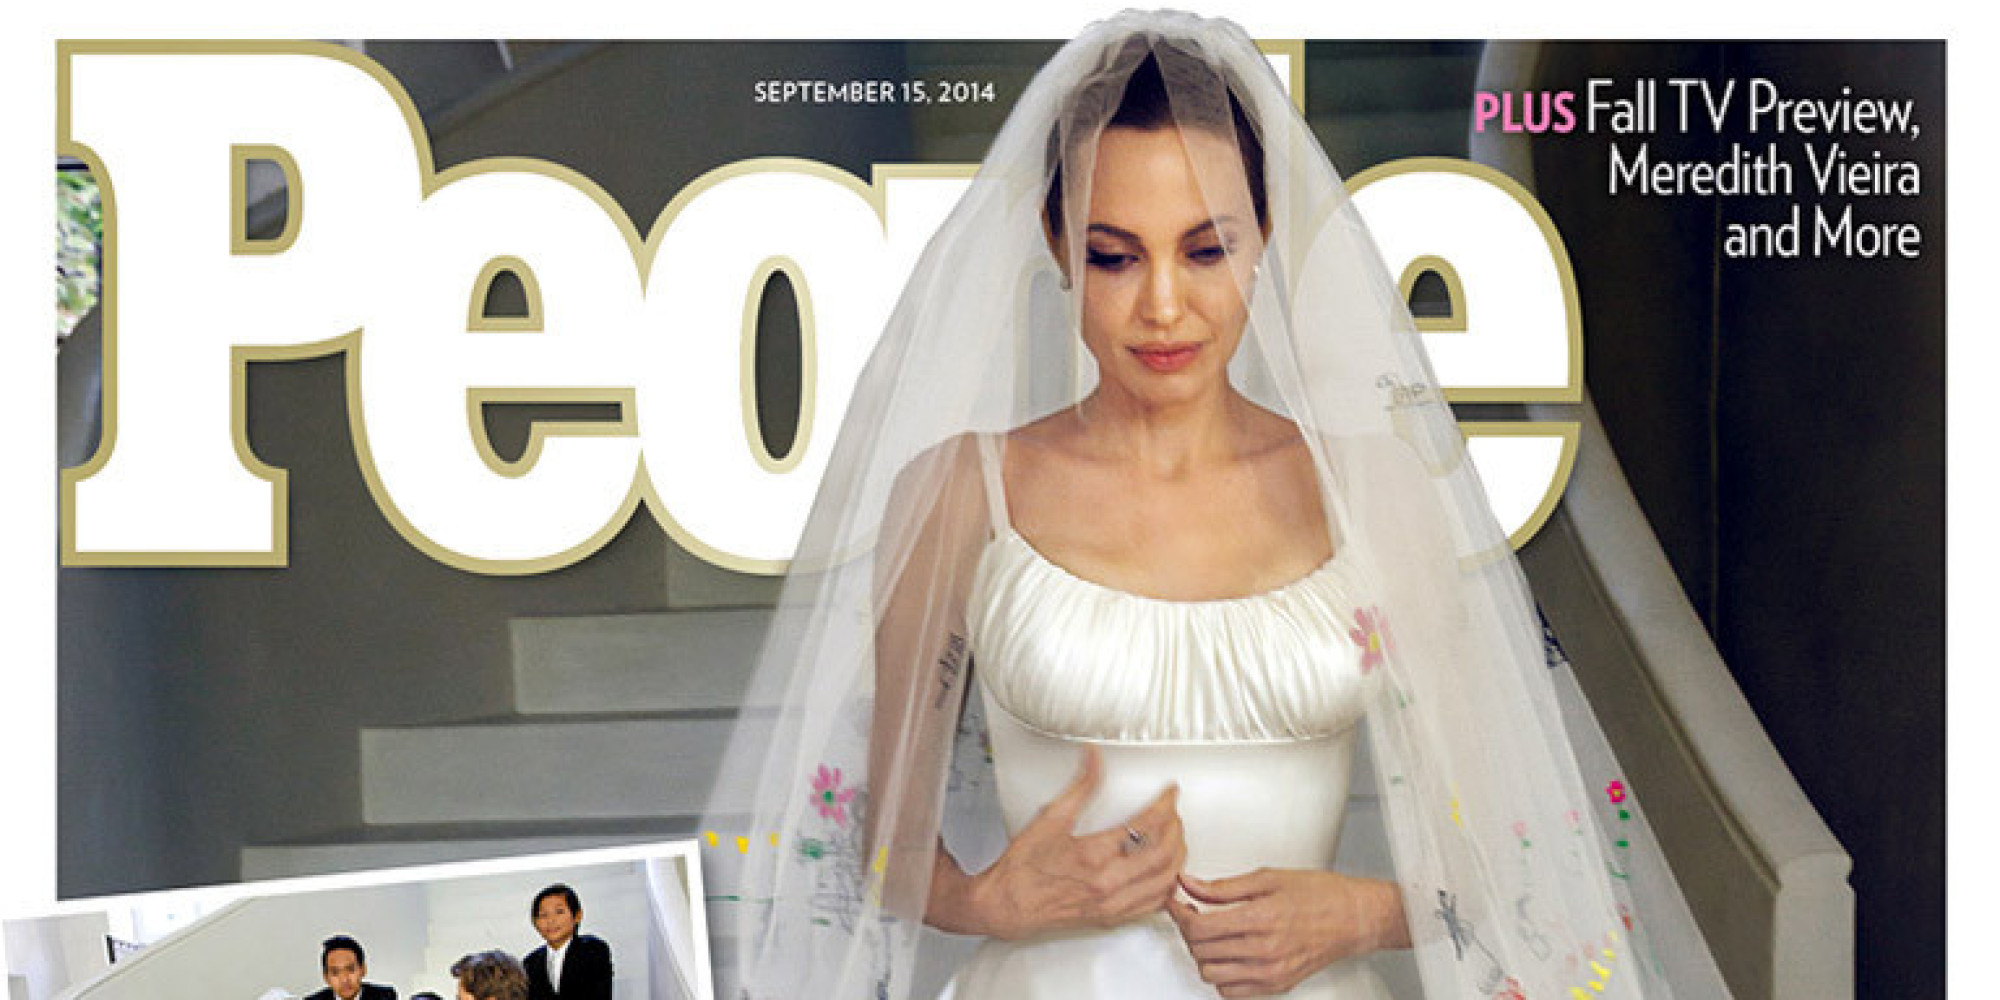 Angelina Jolies Wedding Dress Revealed On The Cover Of People